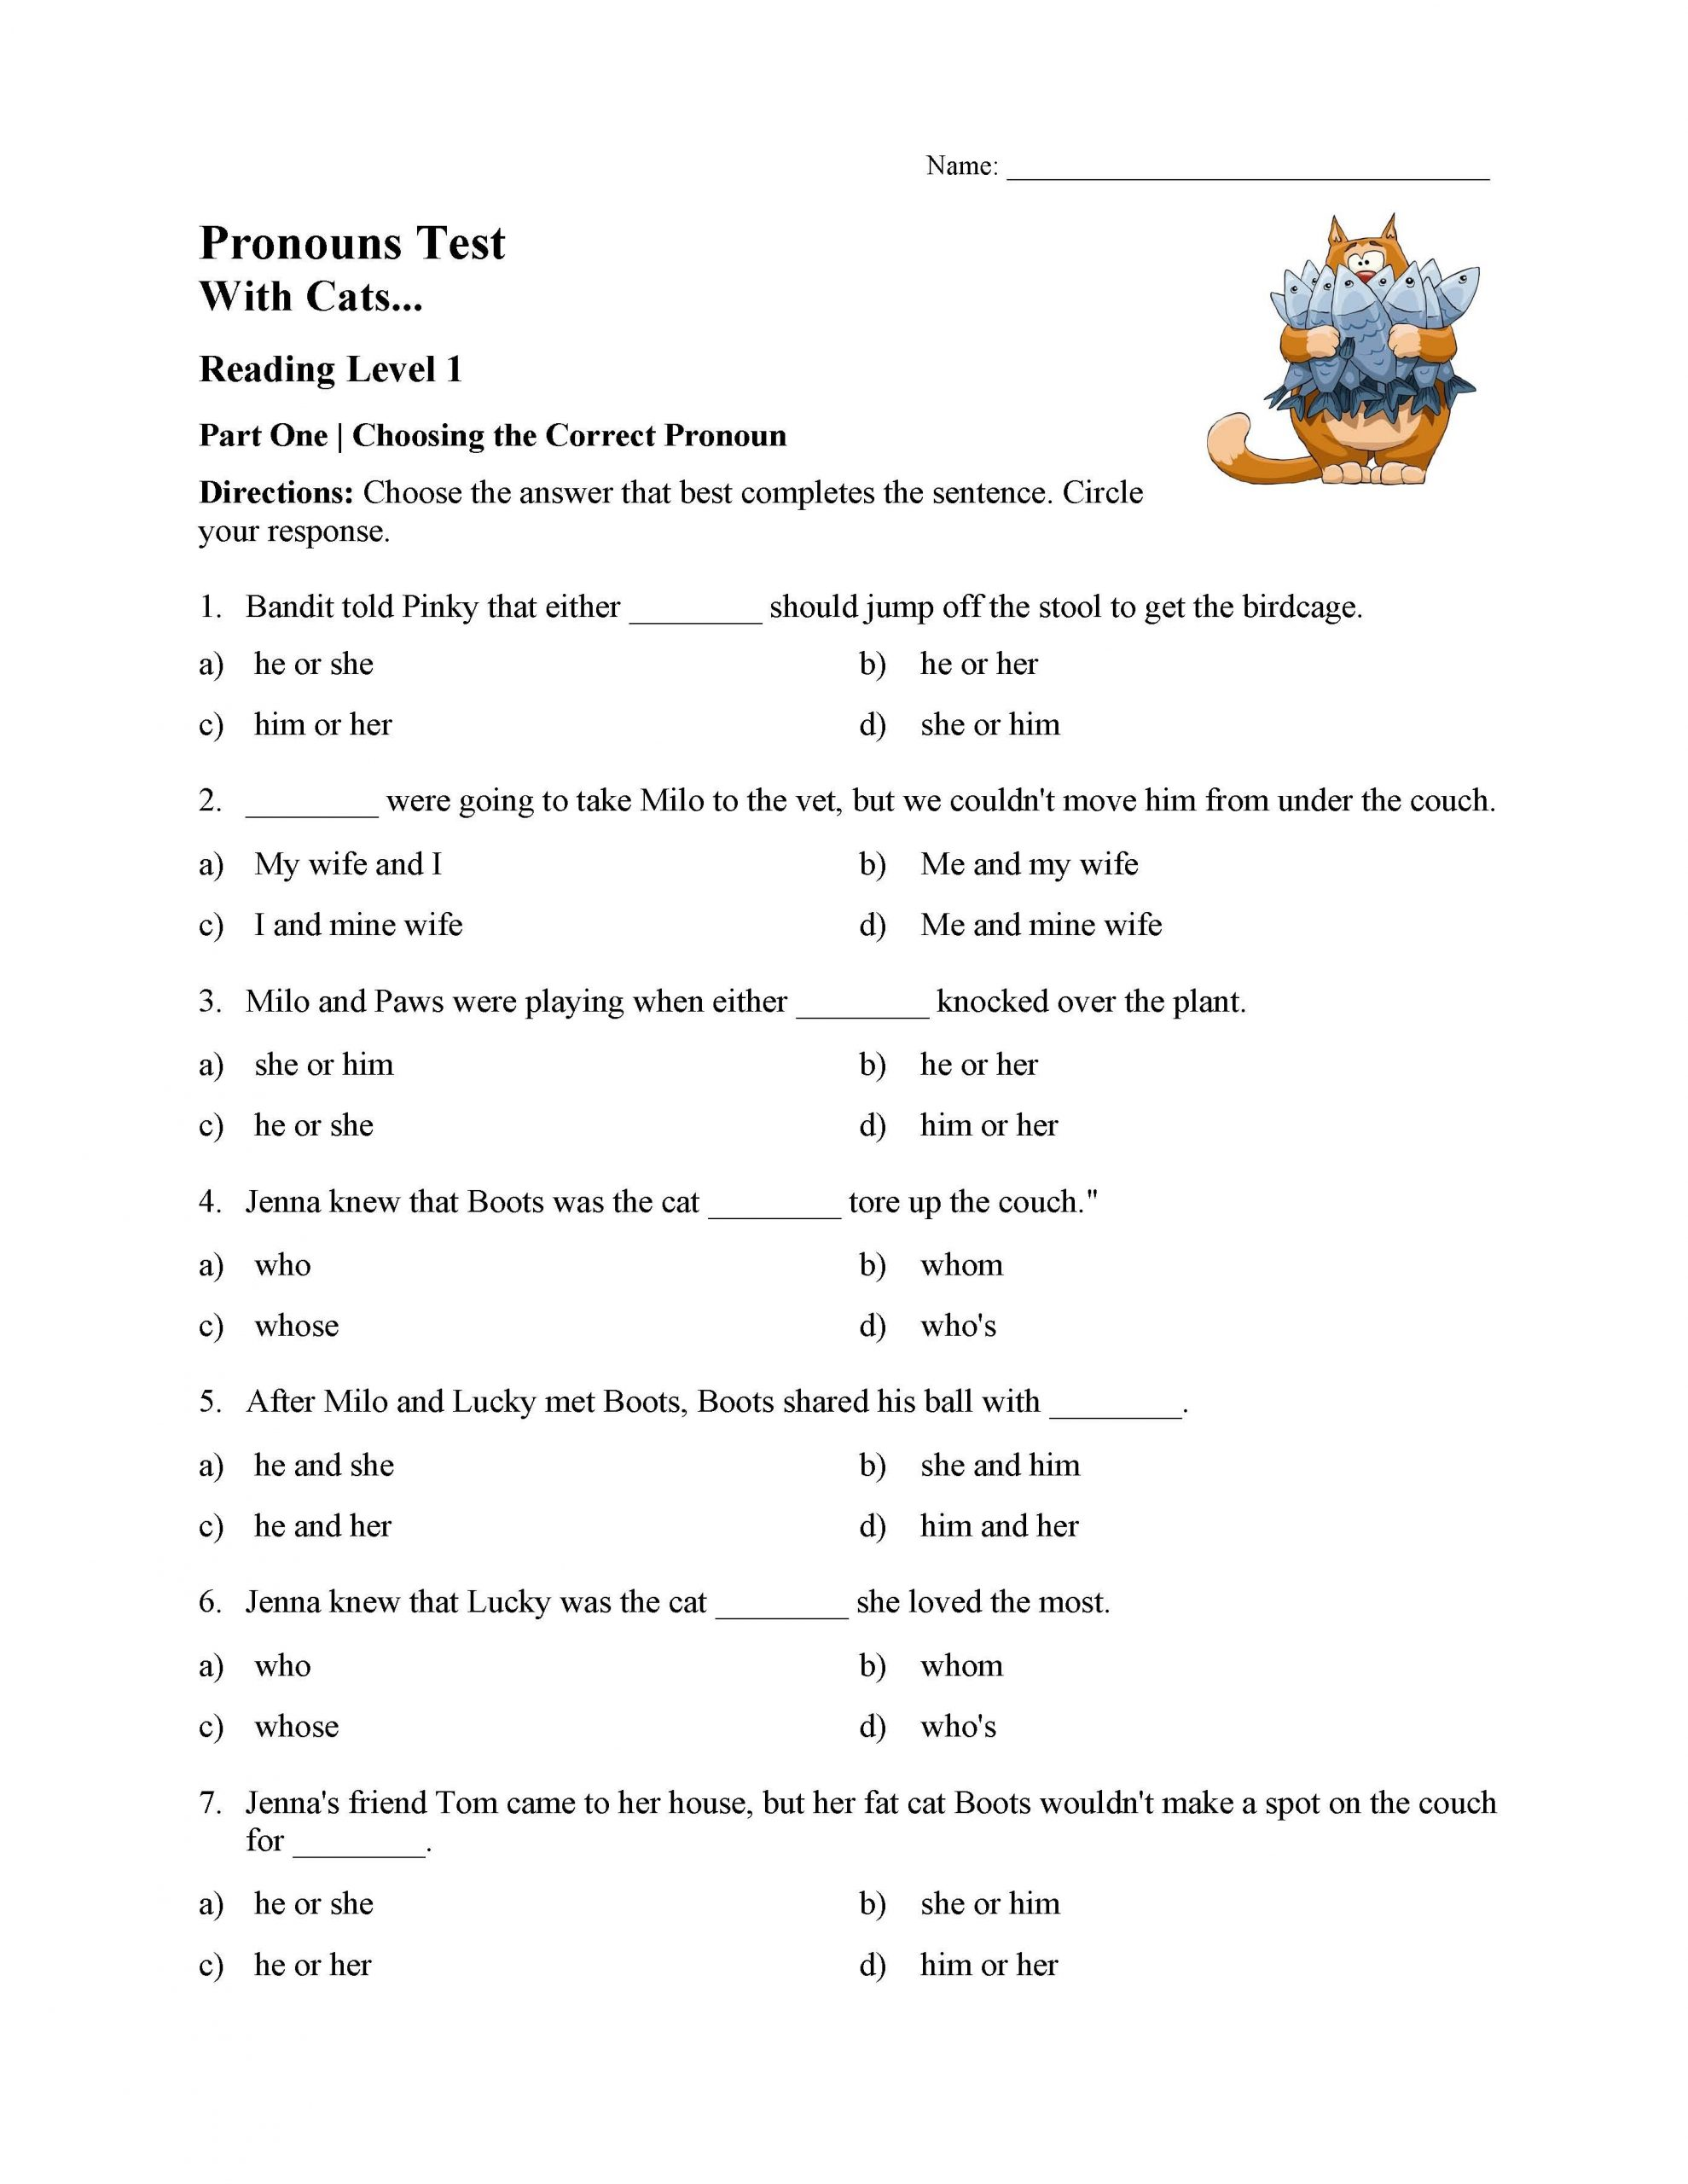 Pronouns Worksheets 5th Grade Pronouns Test with Cats Reading Level 1